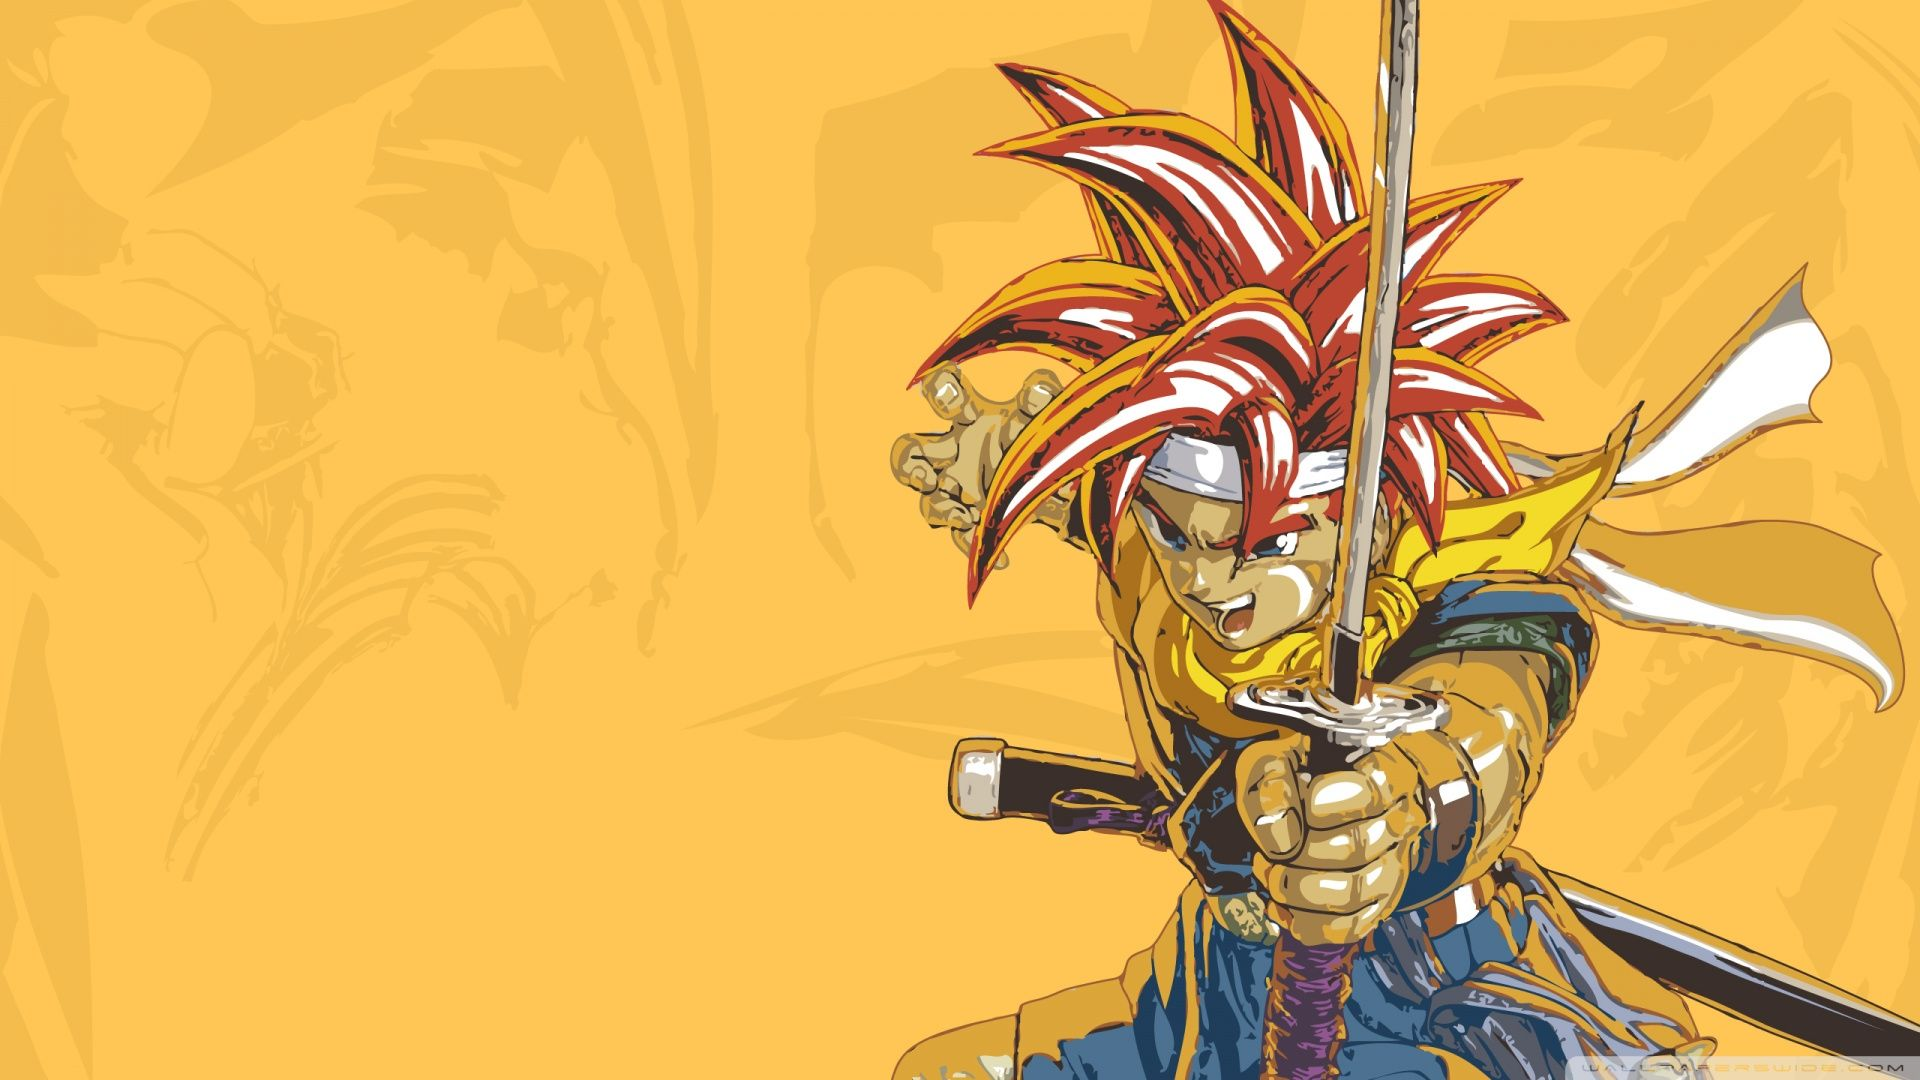 Crono Art Approved Wallpaper Chrono Trigger Chrono Background Pictures